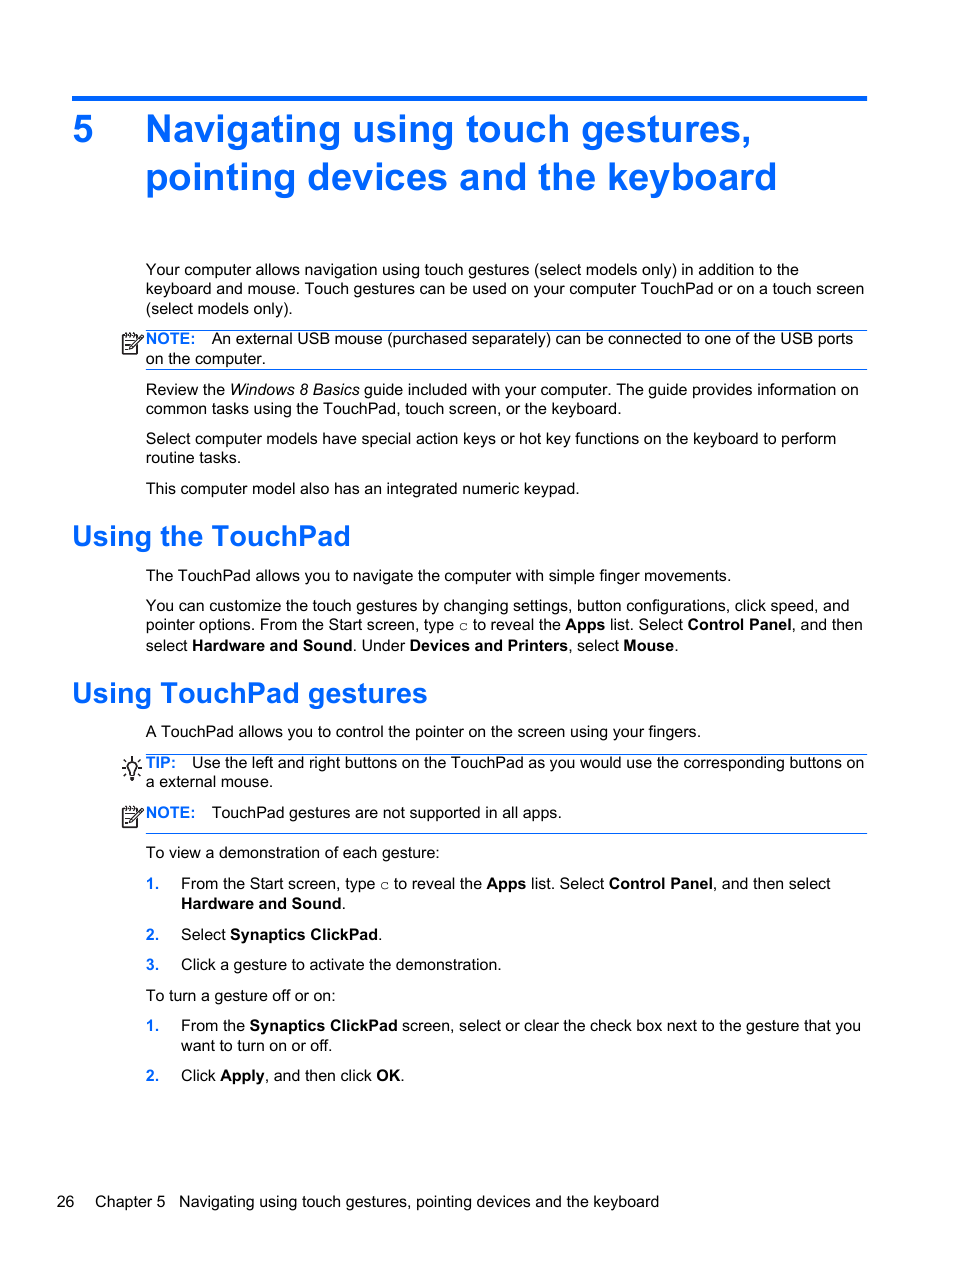 Using the touchpad, Using touchpad gestures, Using the